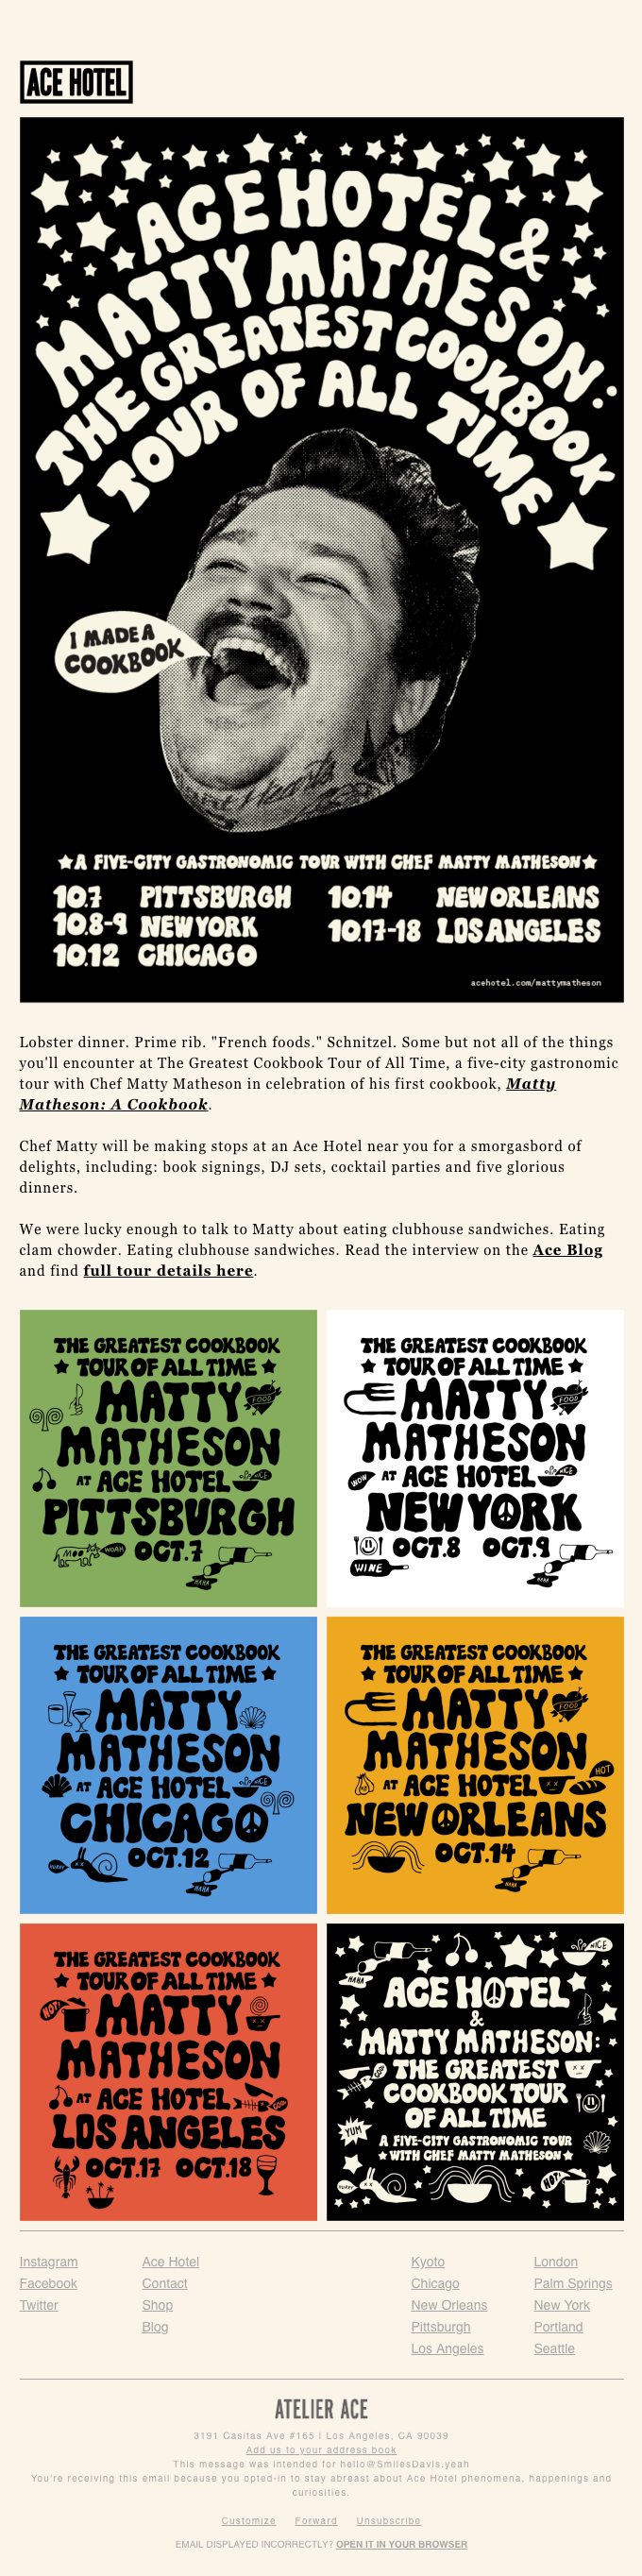 Ace Hotel x Matty Matheson: The Greatest Cookbook Tour of All Time